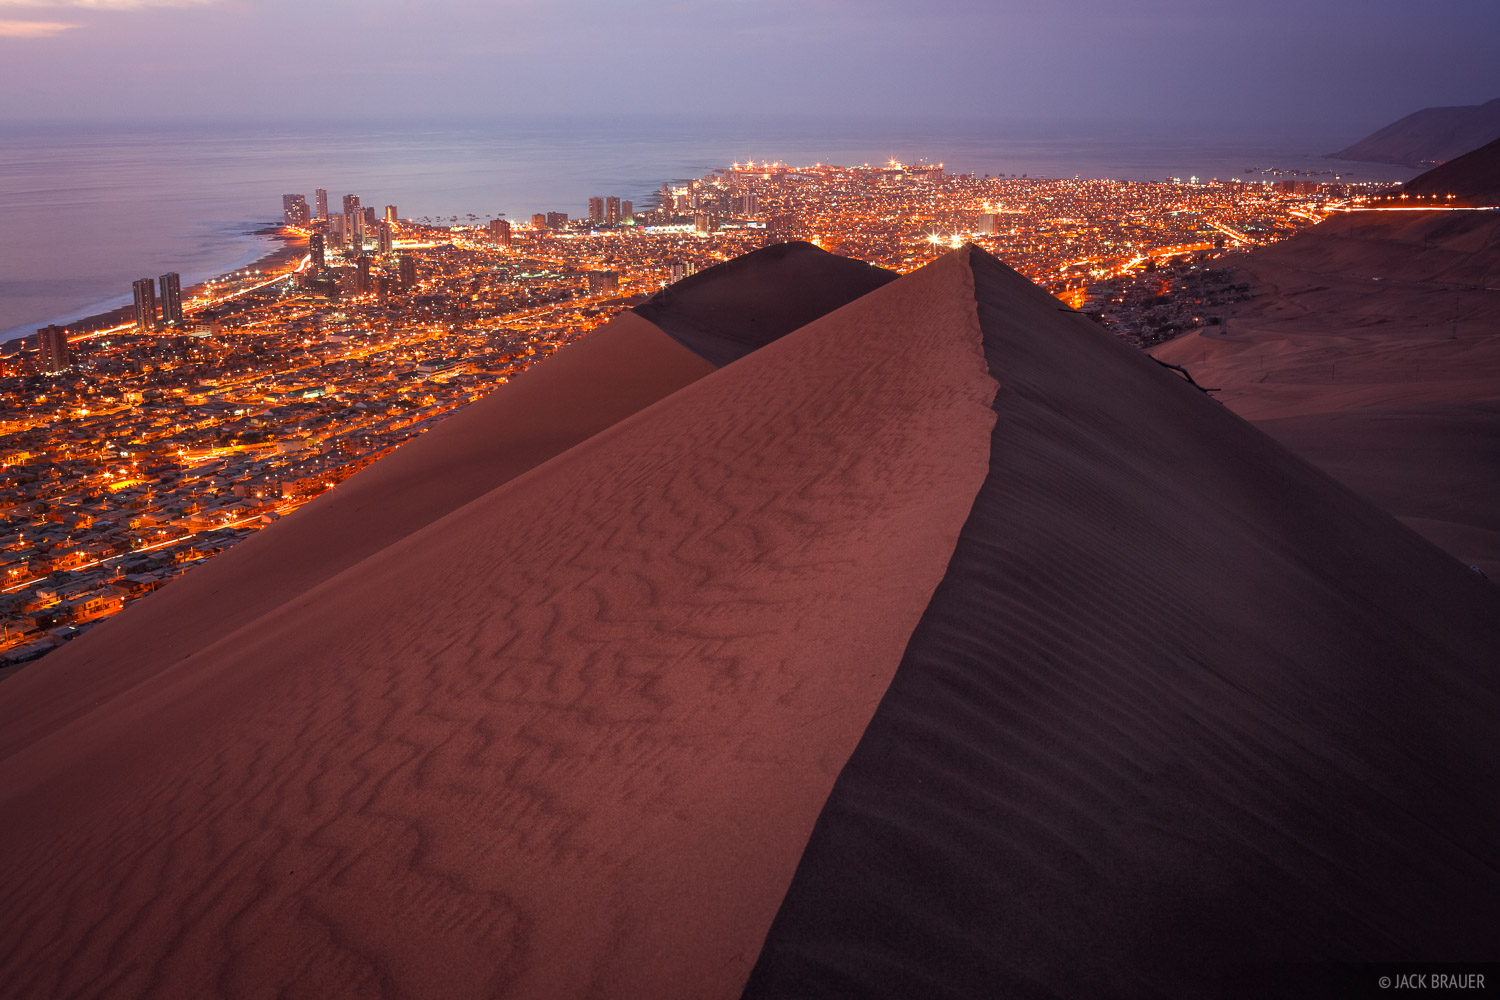 The lights of Iquique shine brilliant as seen from the top of Cerro Dragon, a huge dune that looms over the city.